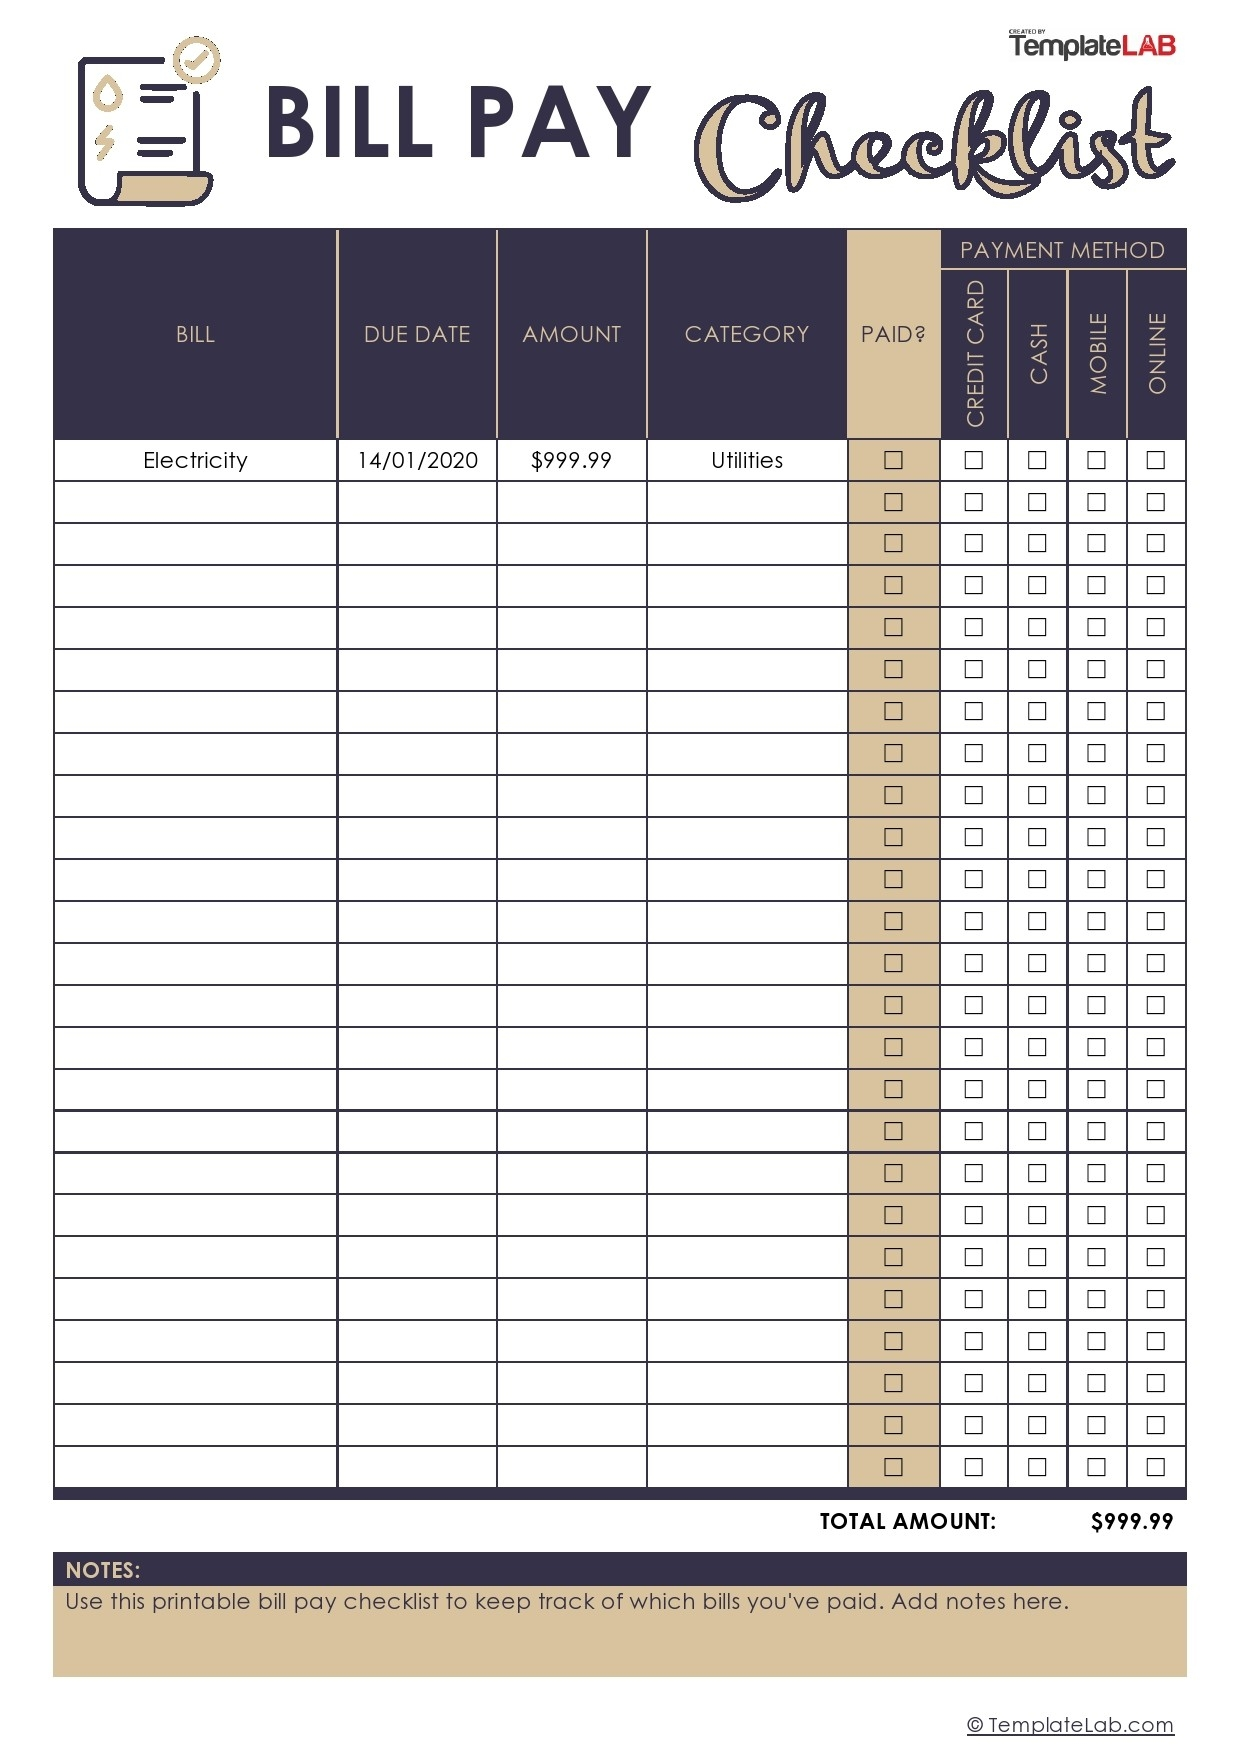 33 Free Bill Pay Checklists & Bill Calendars (Pdf, Word & Excel)  Monthly Bill Checklist Excel